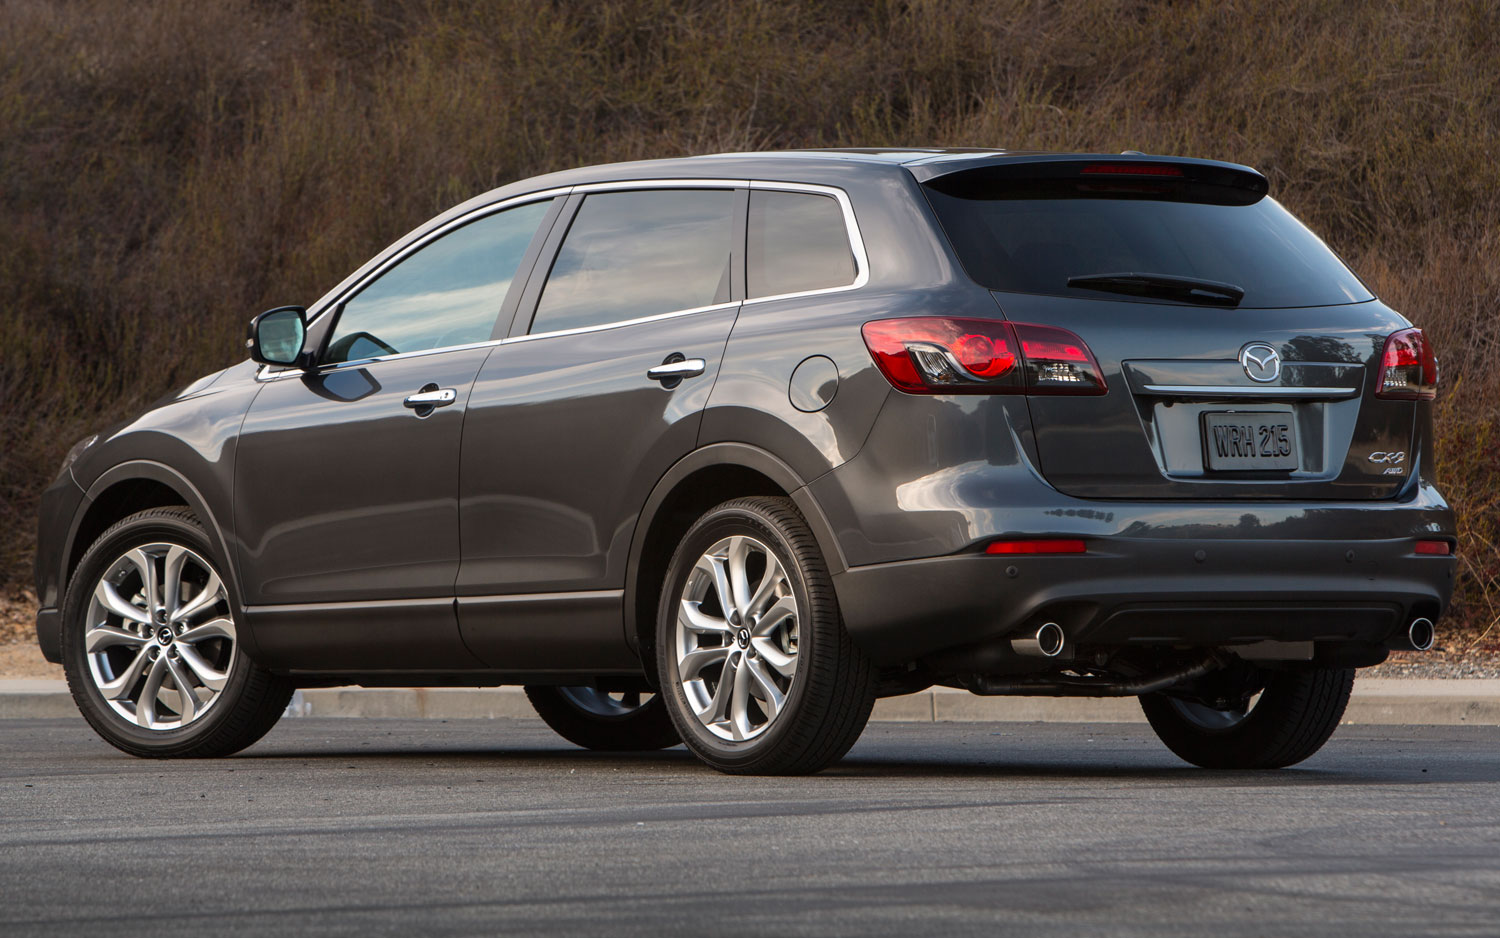 Pictures of mazda cx-9 #2